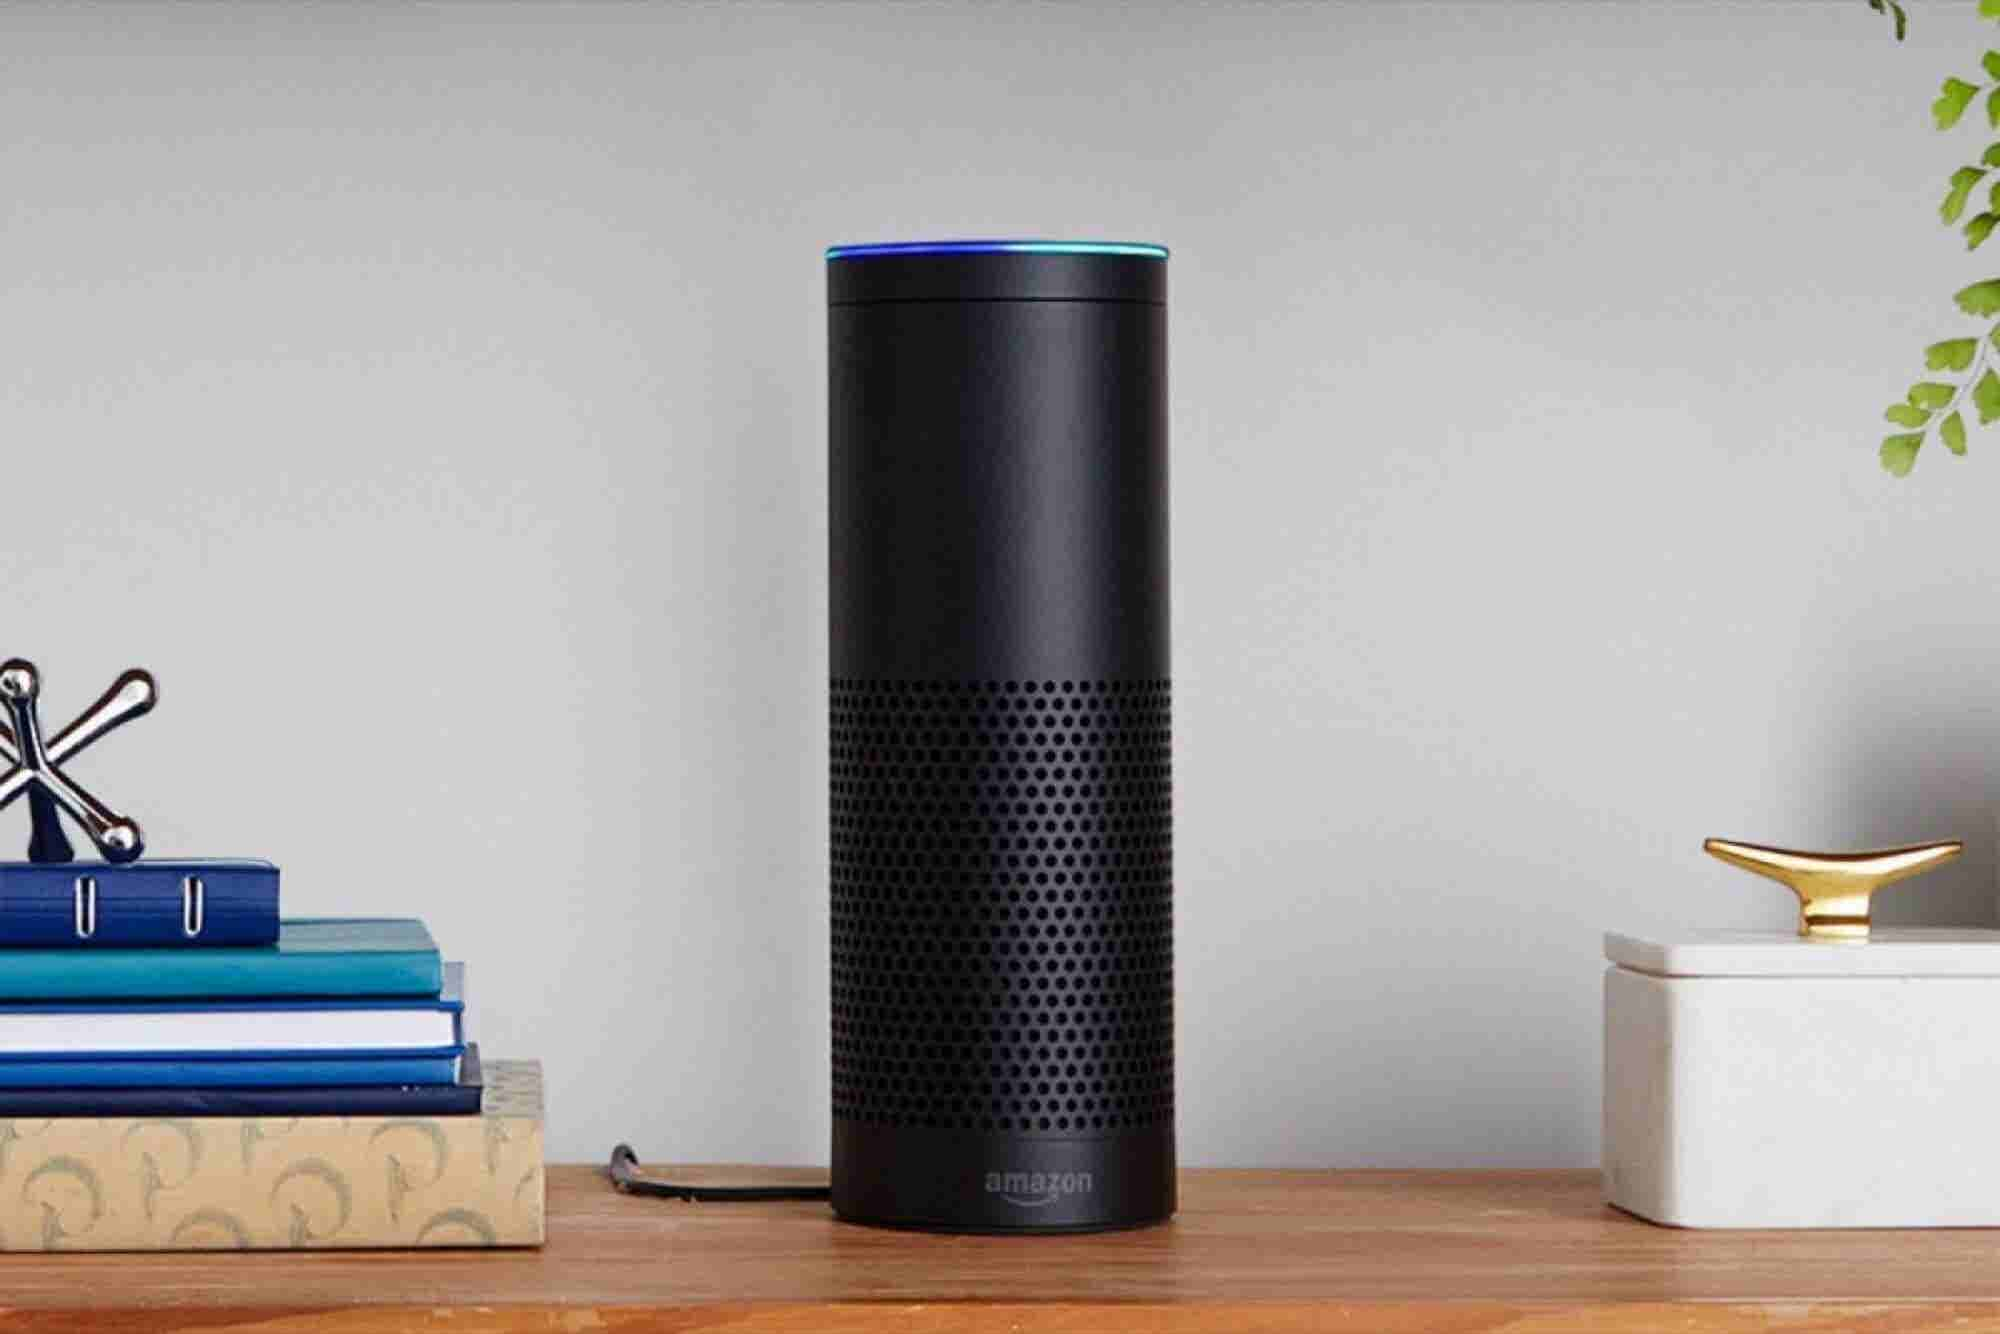 I Hated the Amazon Echo But Decided to Give It a Second Chance -- Here's What Happened